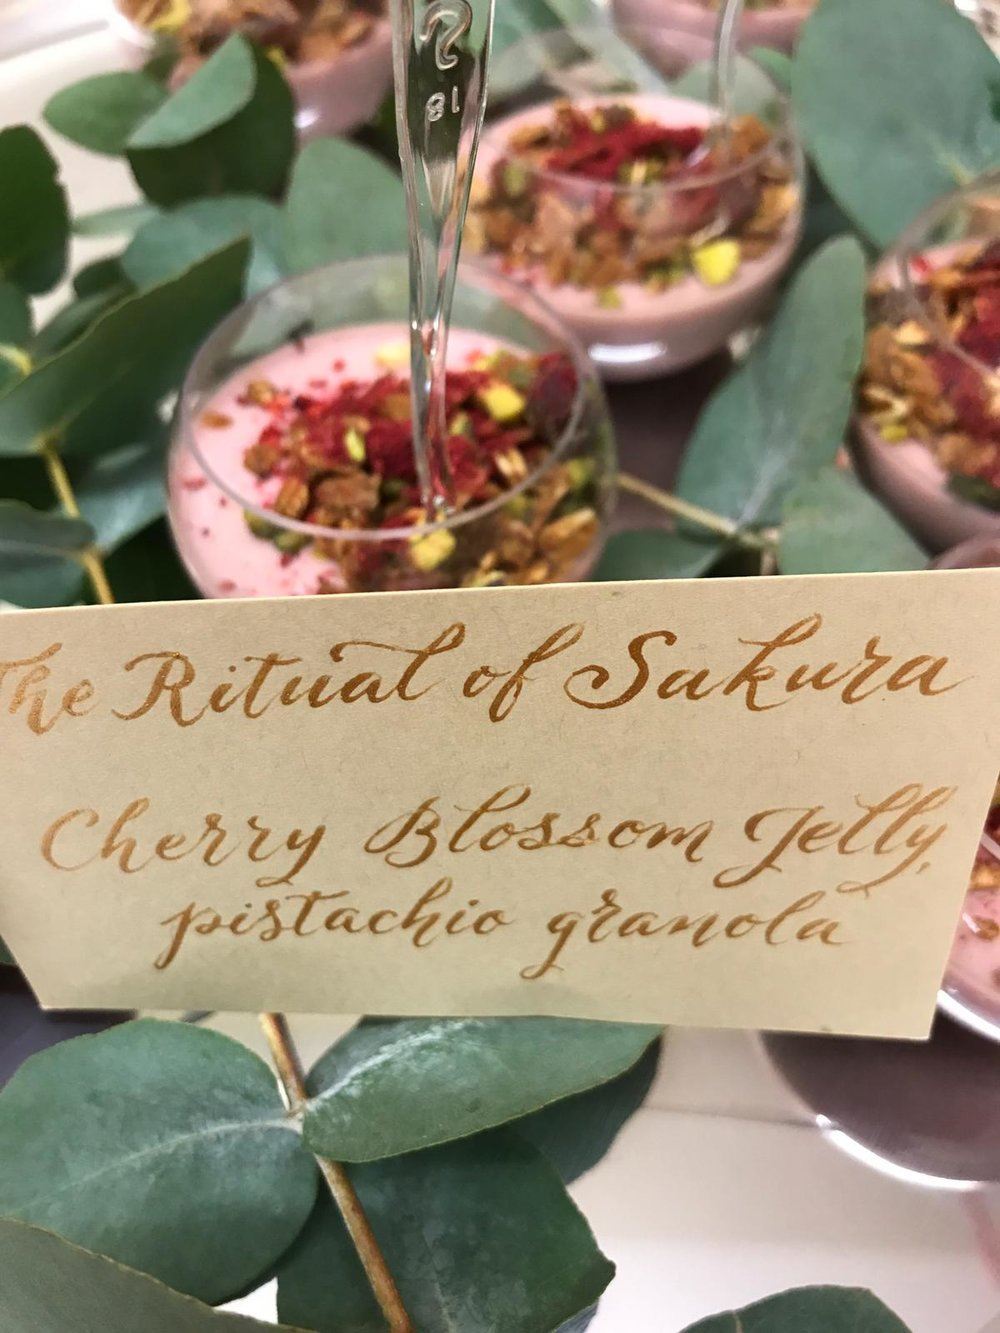 Cherry Blossom Jelly with Pistachio Granola